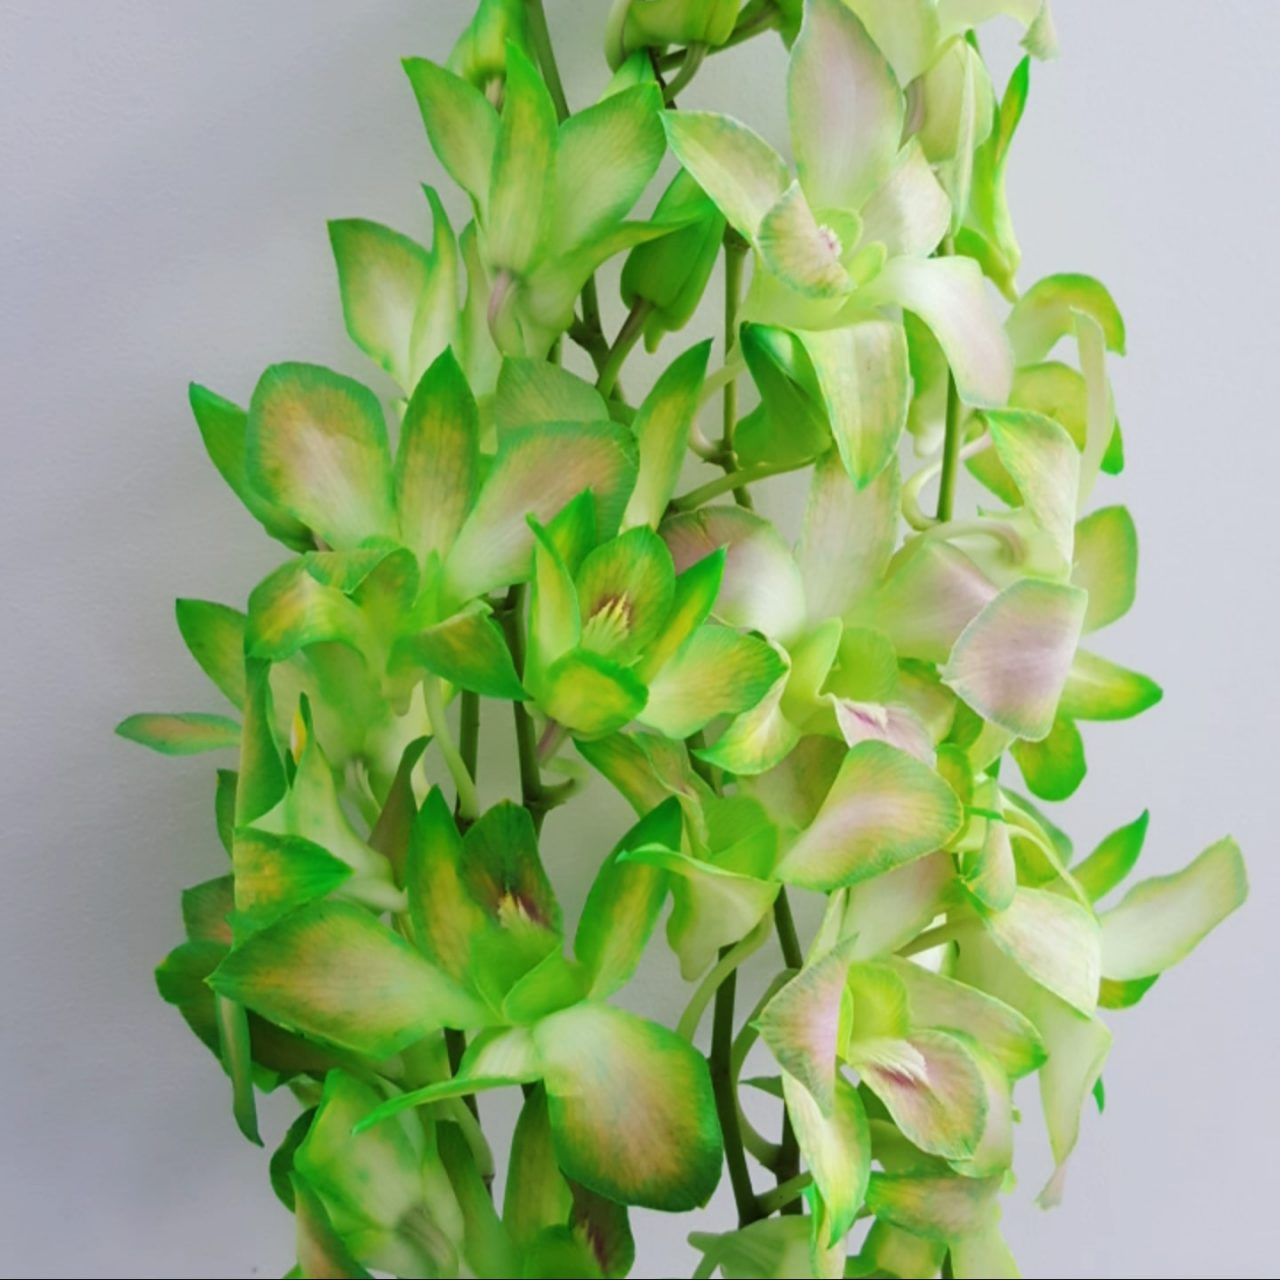 Dyed green orchid